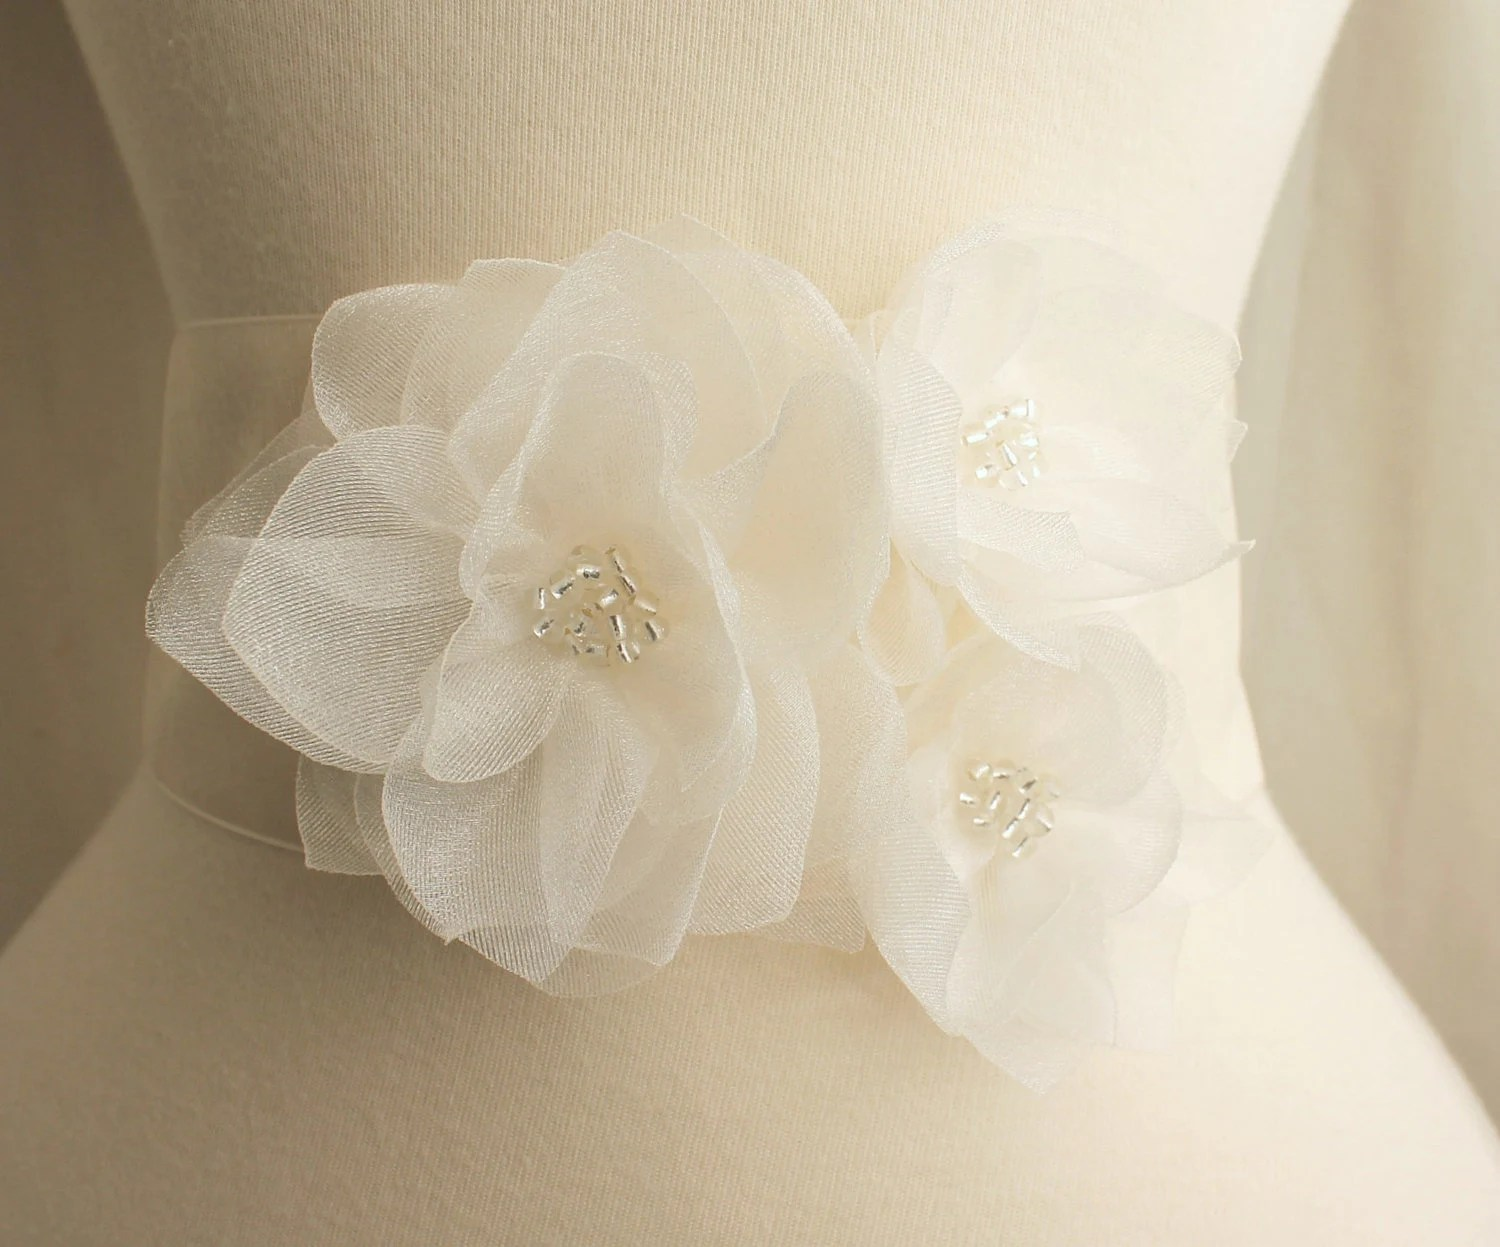 fall wedding sash wedding sash Bridal Organza Dahlia Floral Sash Ivory Bridal Sash Belt Flower girl Bridesmaids Sash Set Wedding Gift Accessory